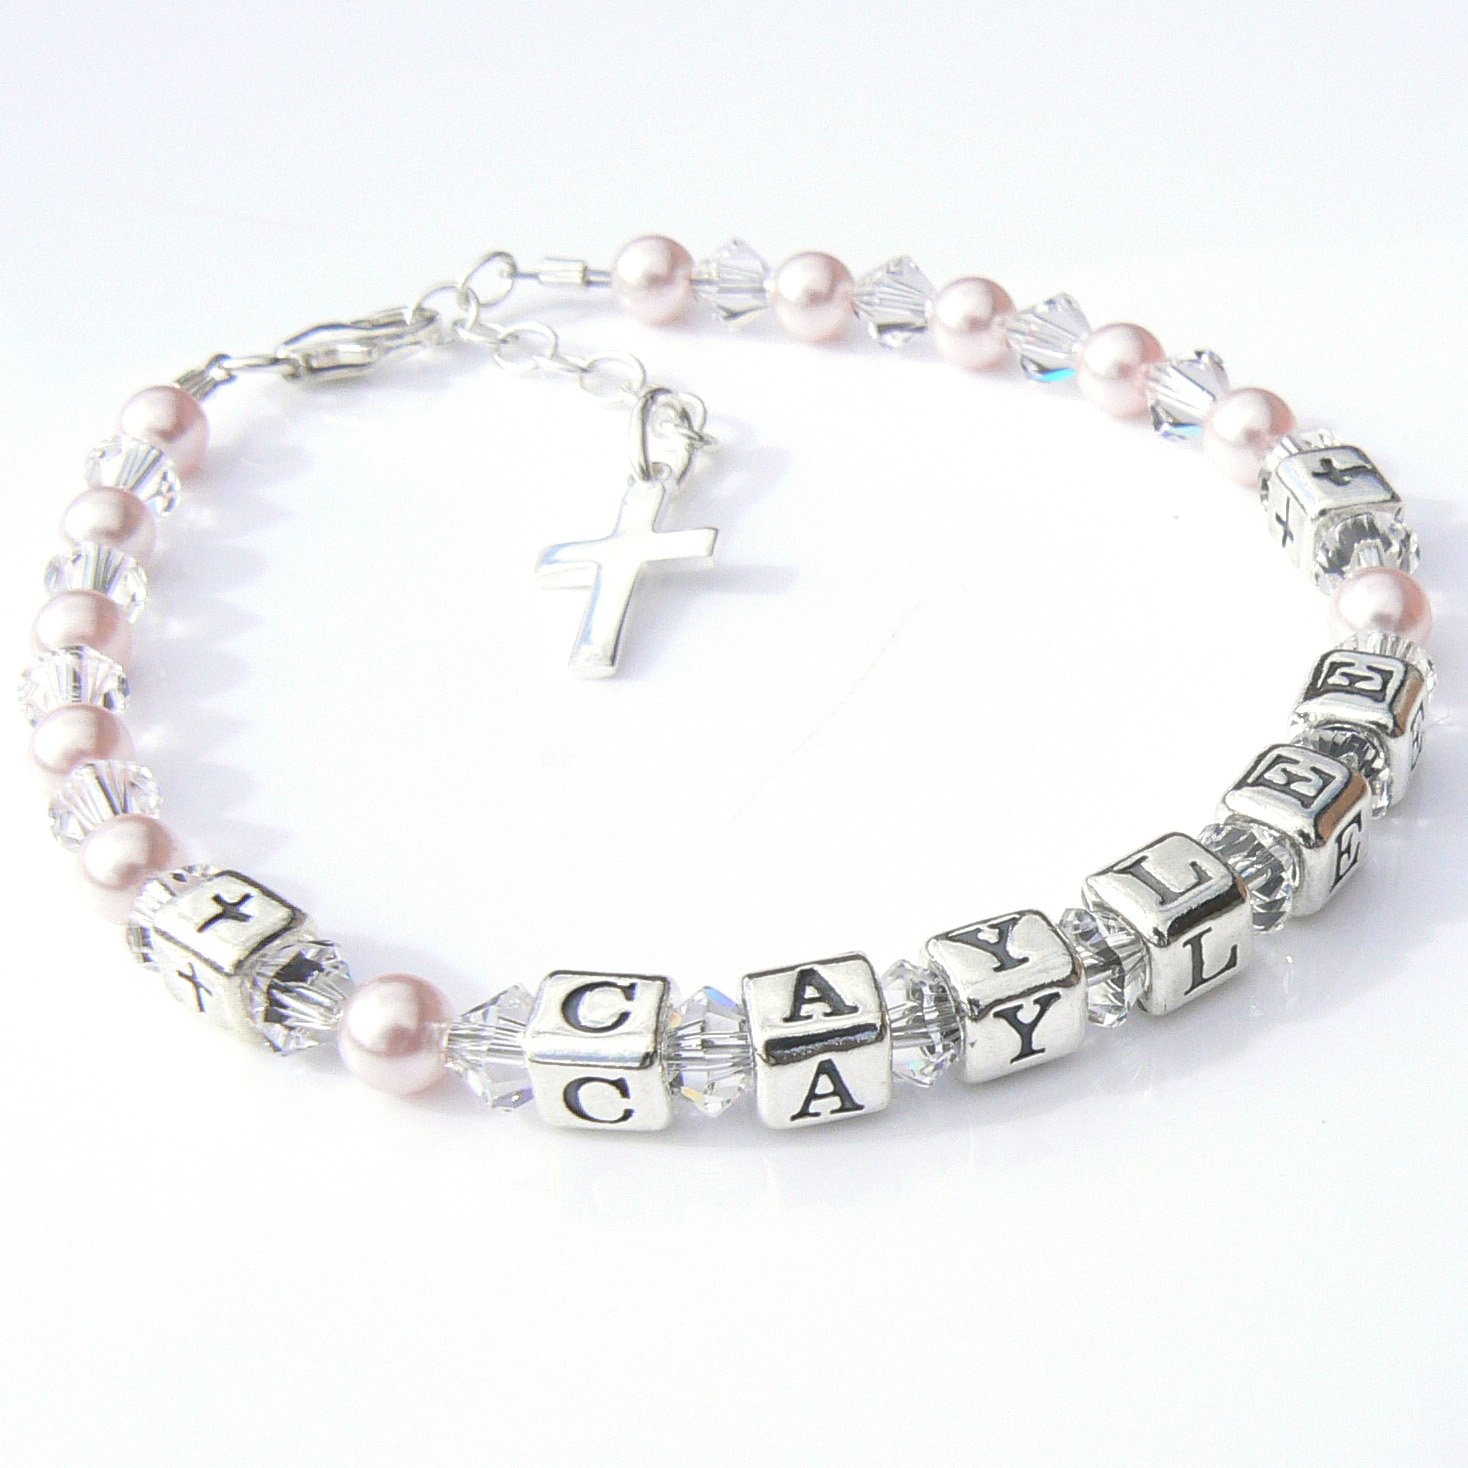 Childrens Name Bracelet - First Holy Communion Gift - Boxed Occasions Emporium